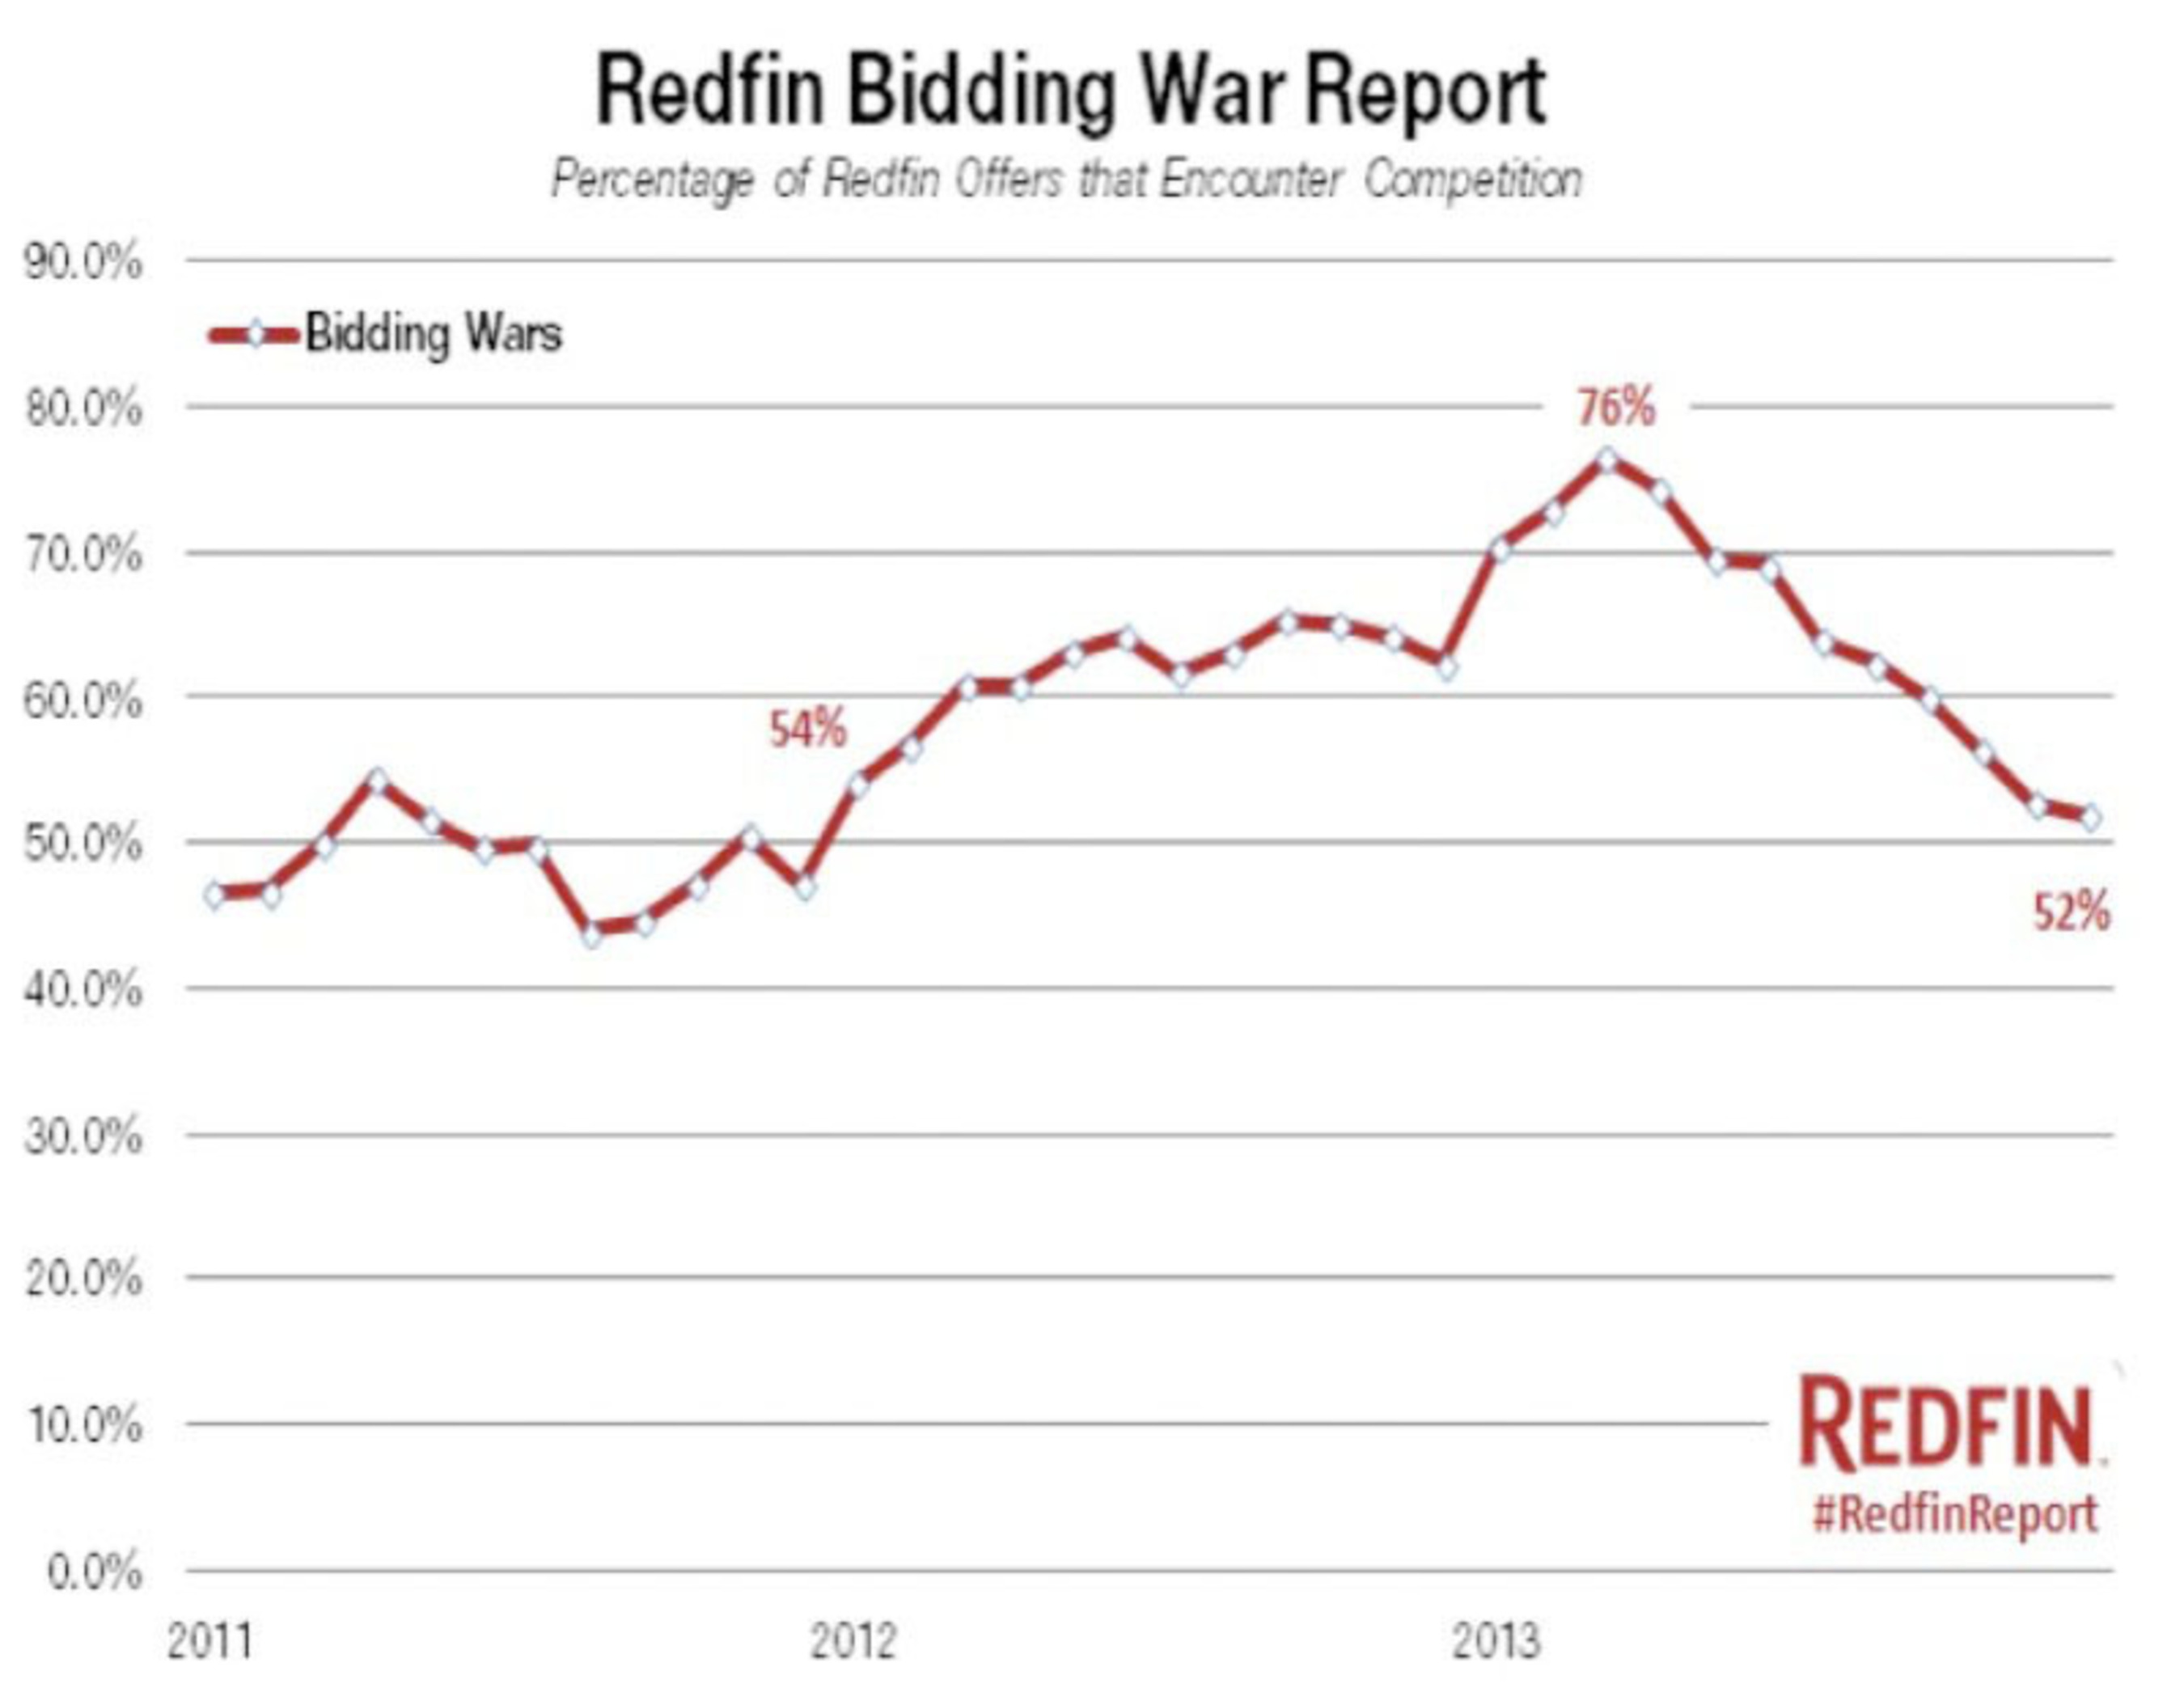 After falling sharply since the spring, the percentage of Redfin offers facing bidding wars in December was ...